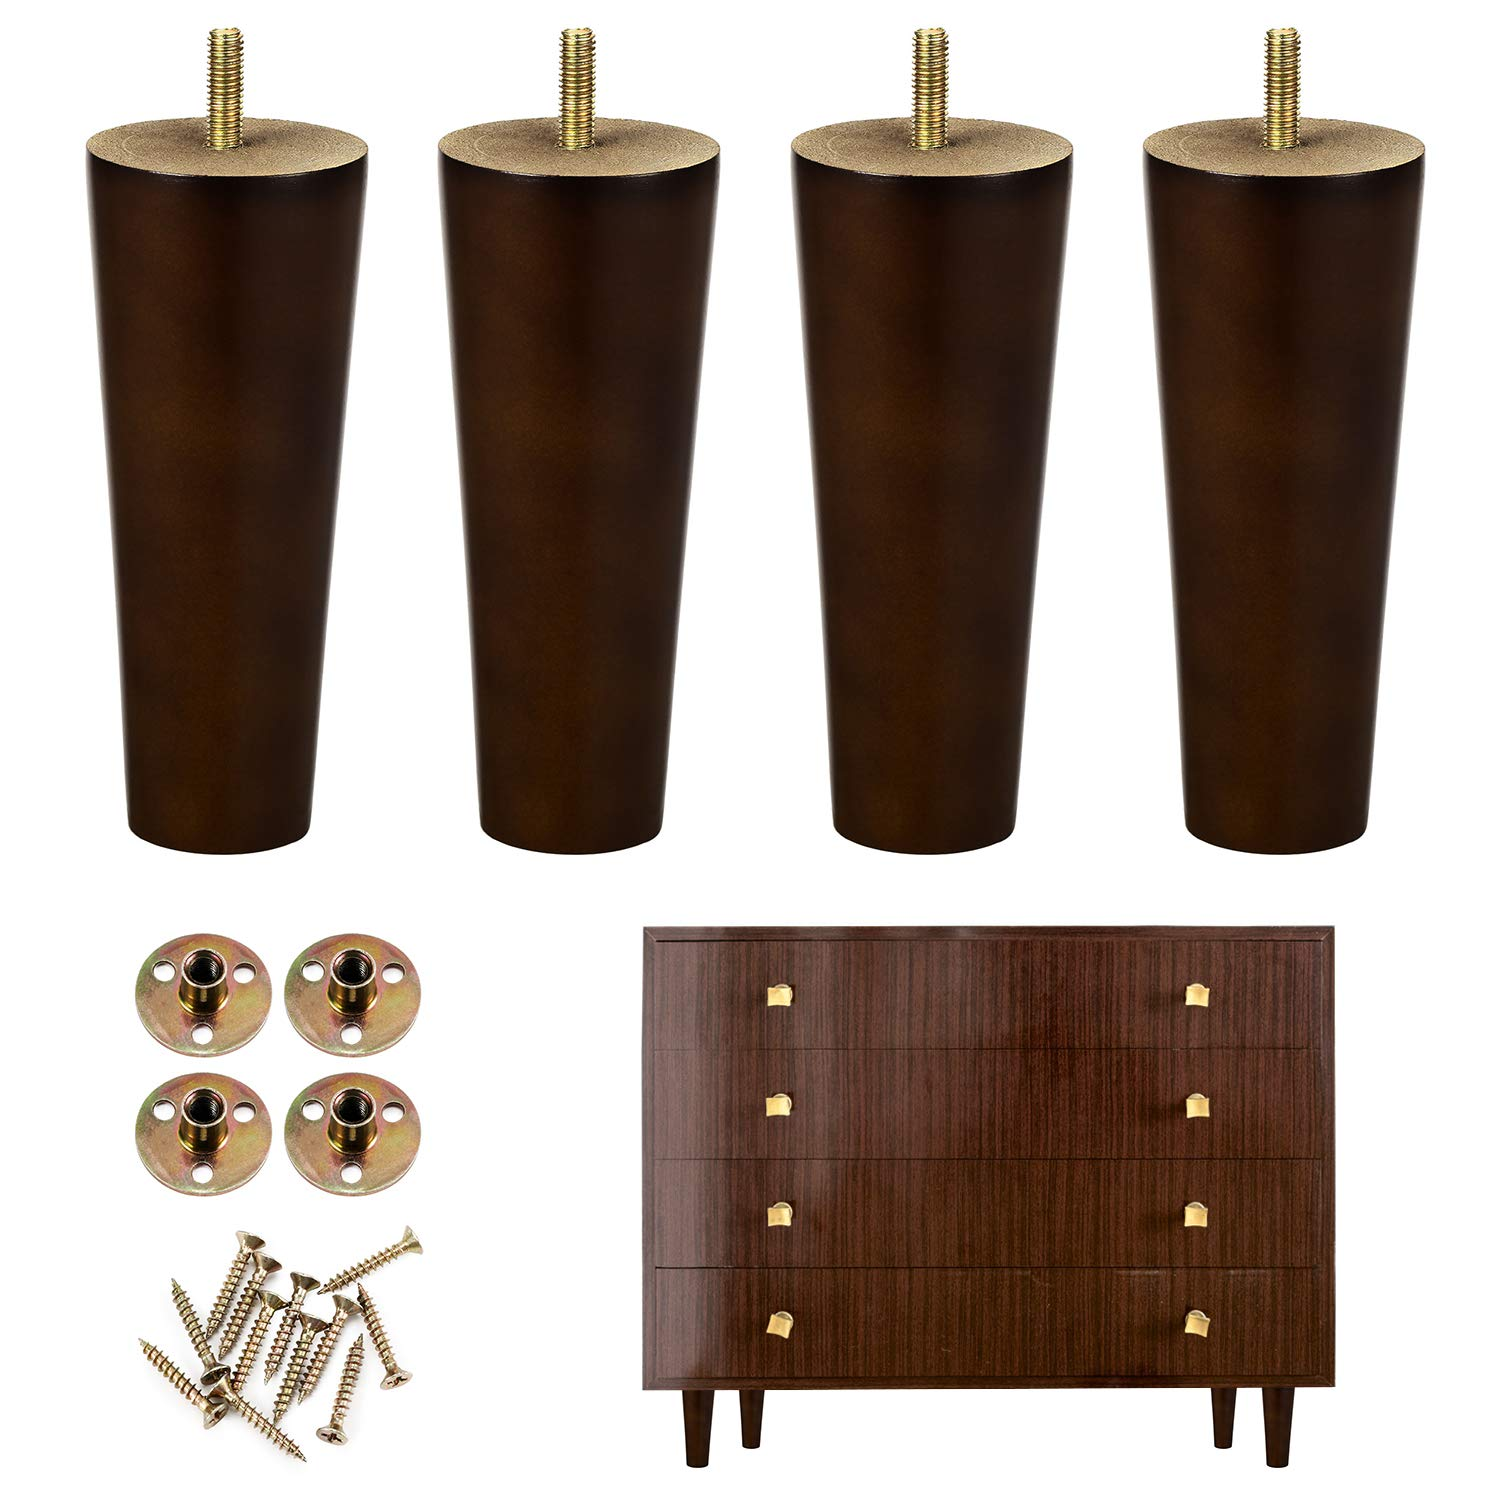 One Sight Wood Furniture Legs, 6 Inch Furniture Leg Wood Sofa Legs Replacement Legs for Armchair, Cabinet, Couch, Dresser(Set of 4)